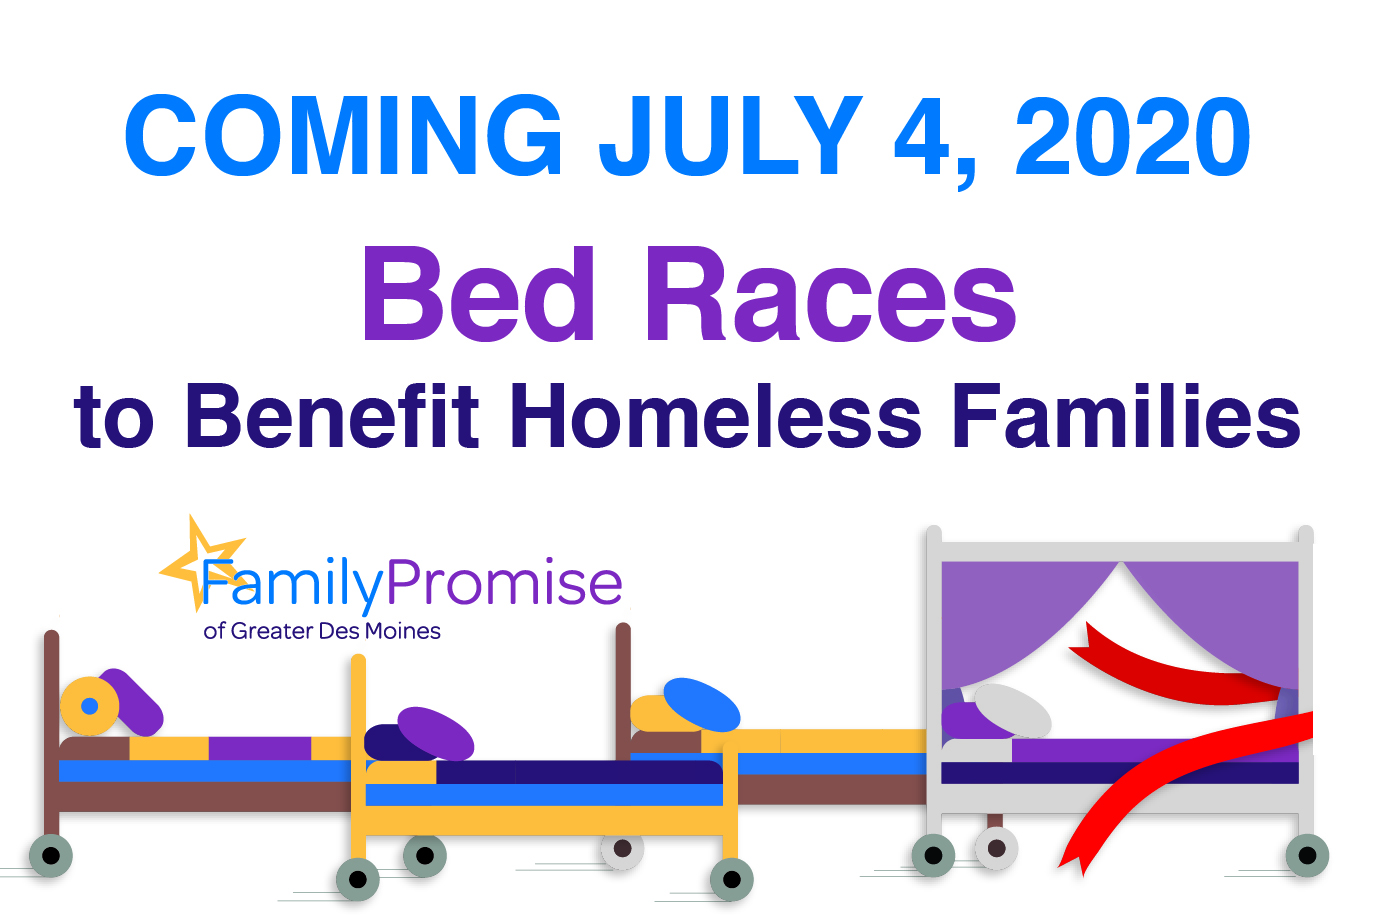 Bed Races - July 4, 2020